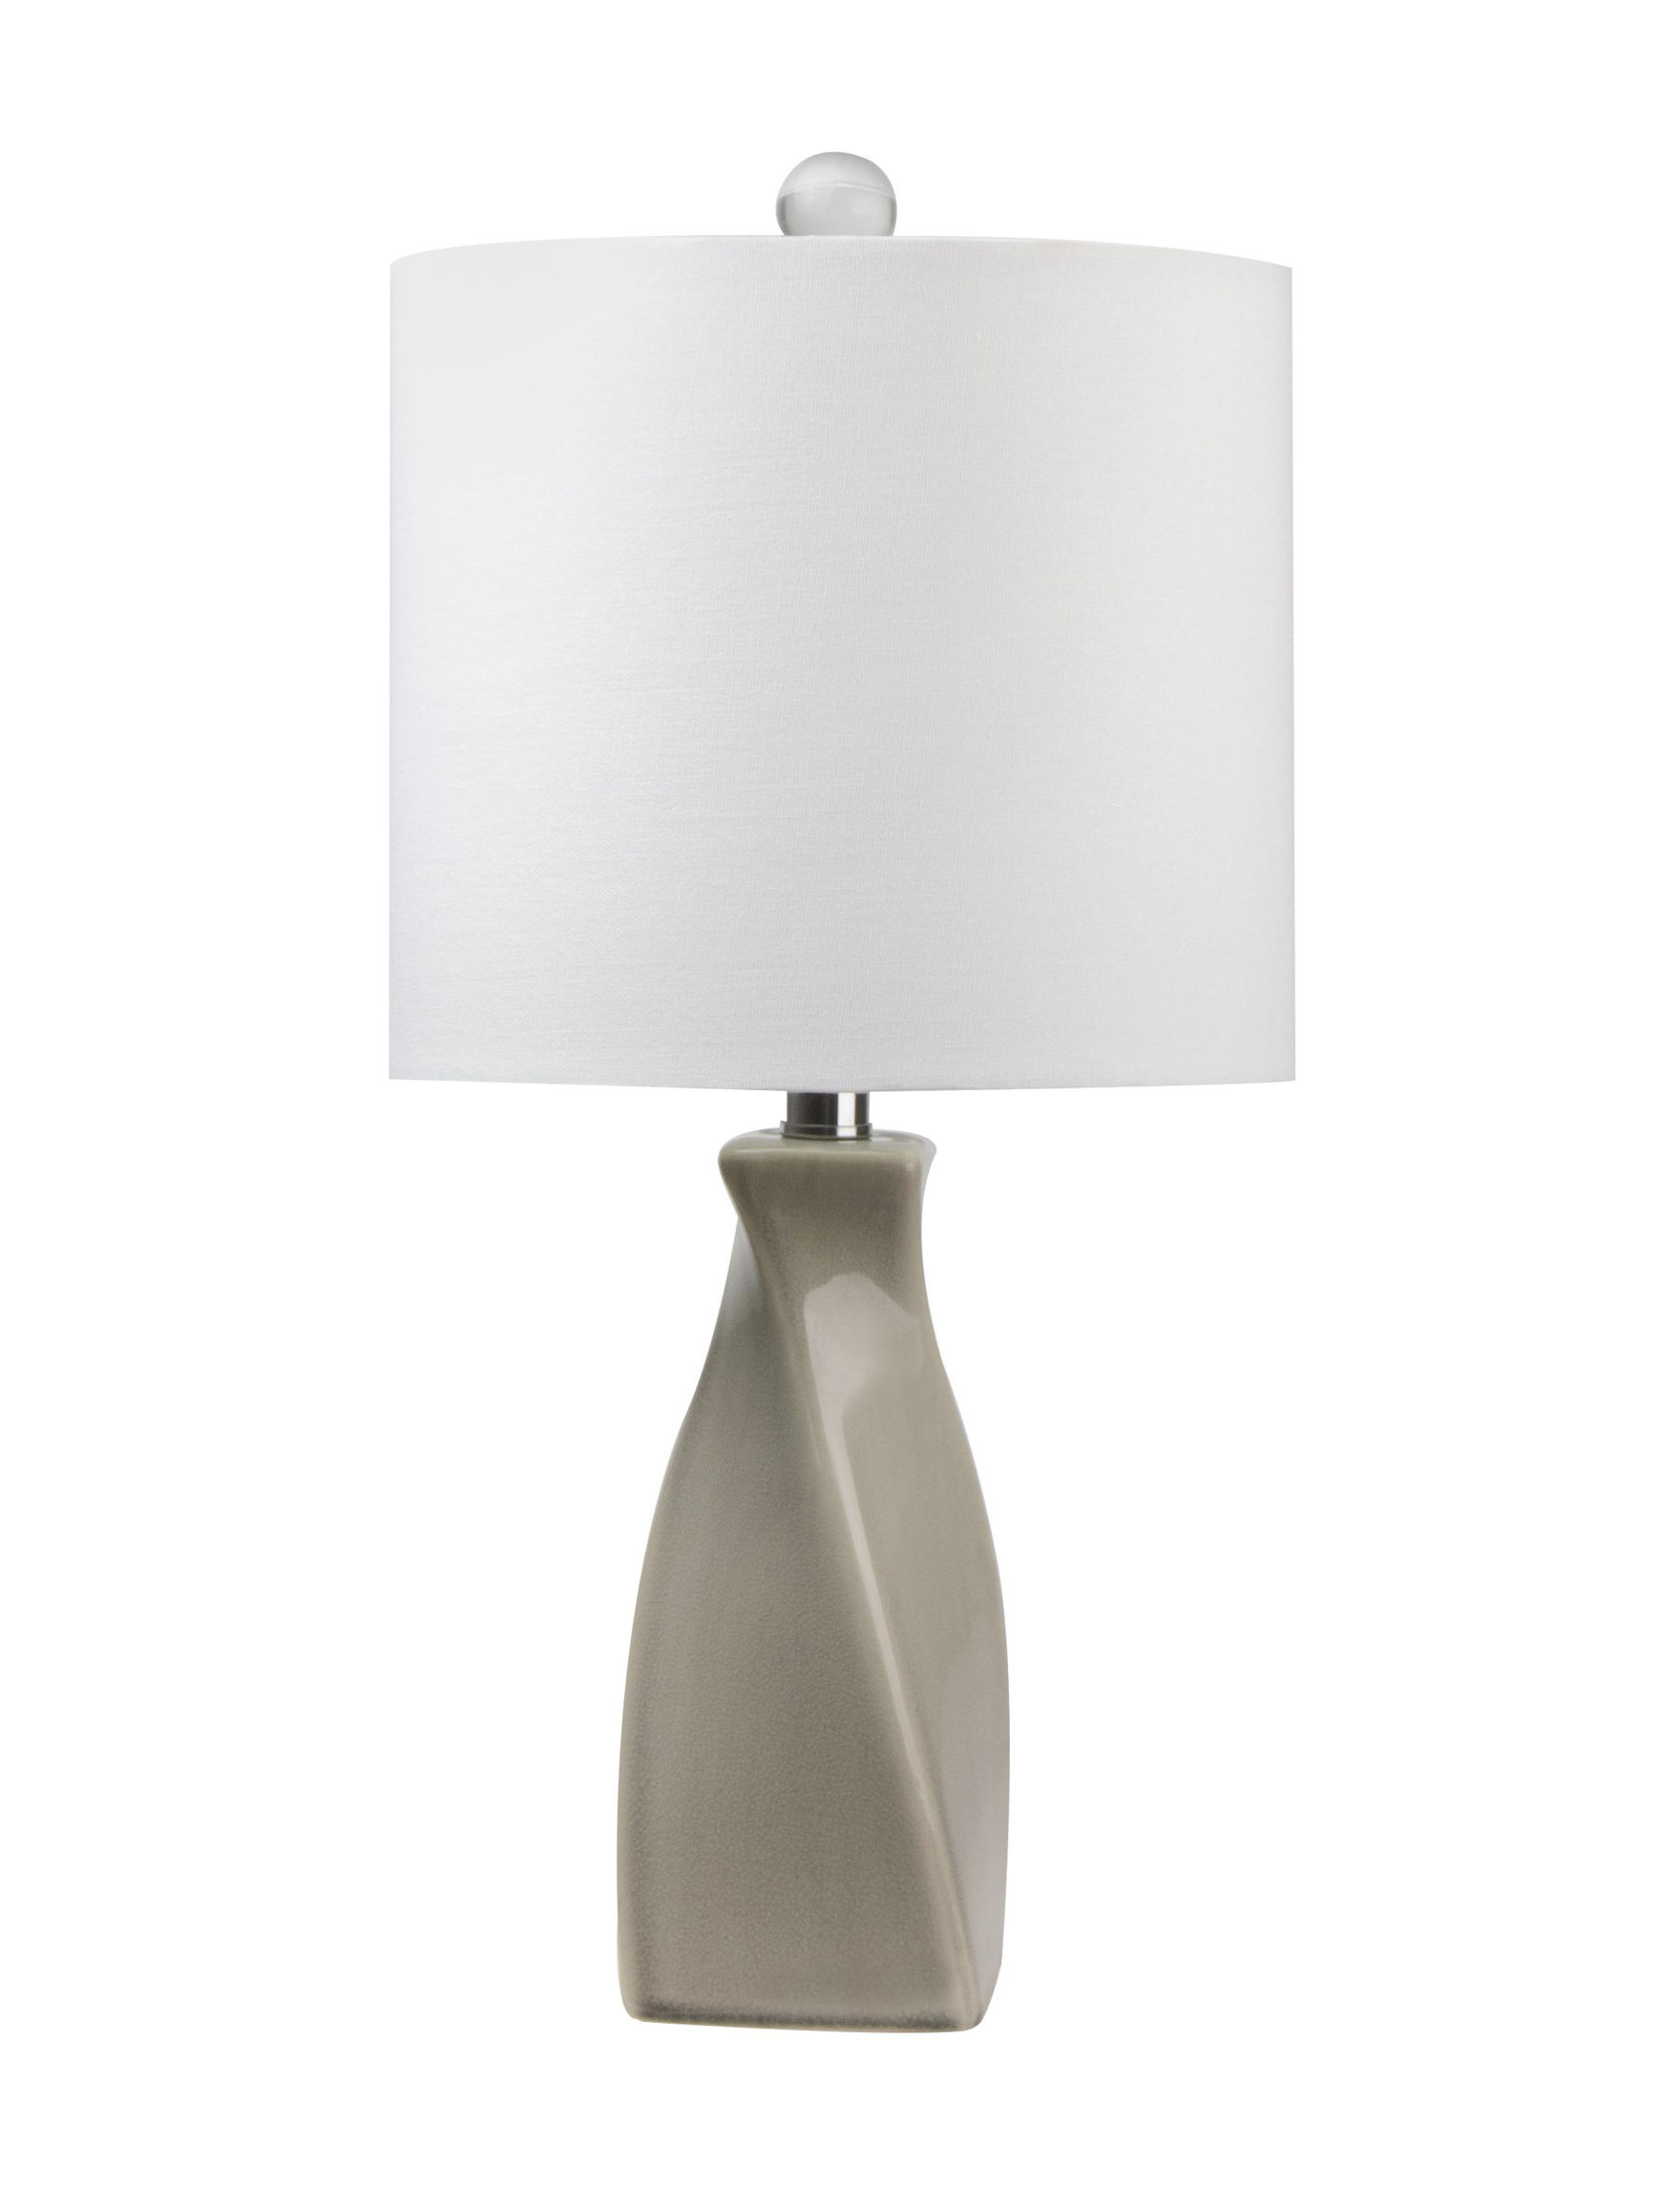 Grandview Gallery Beige / White Table Lamps Lighting & Lamps